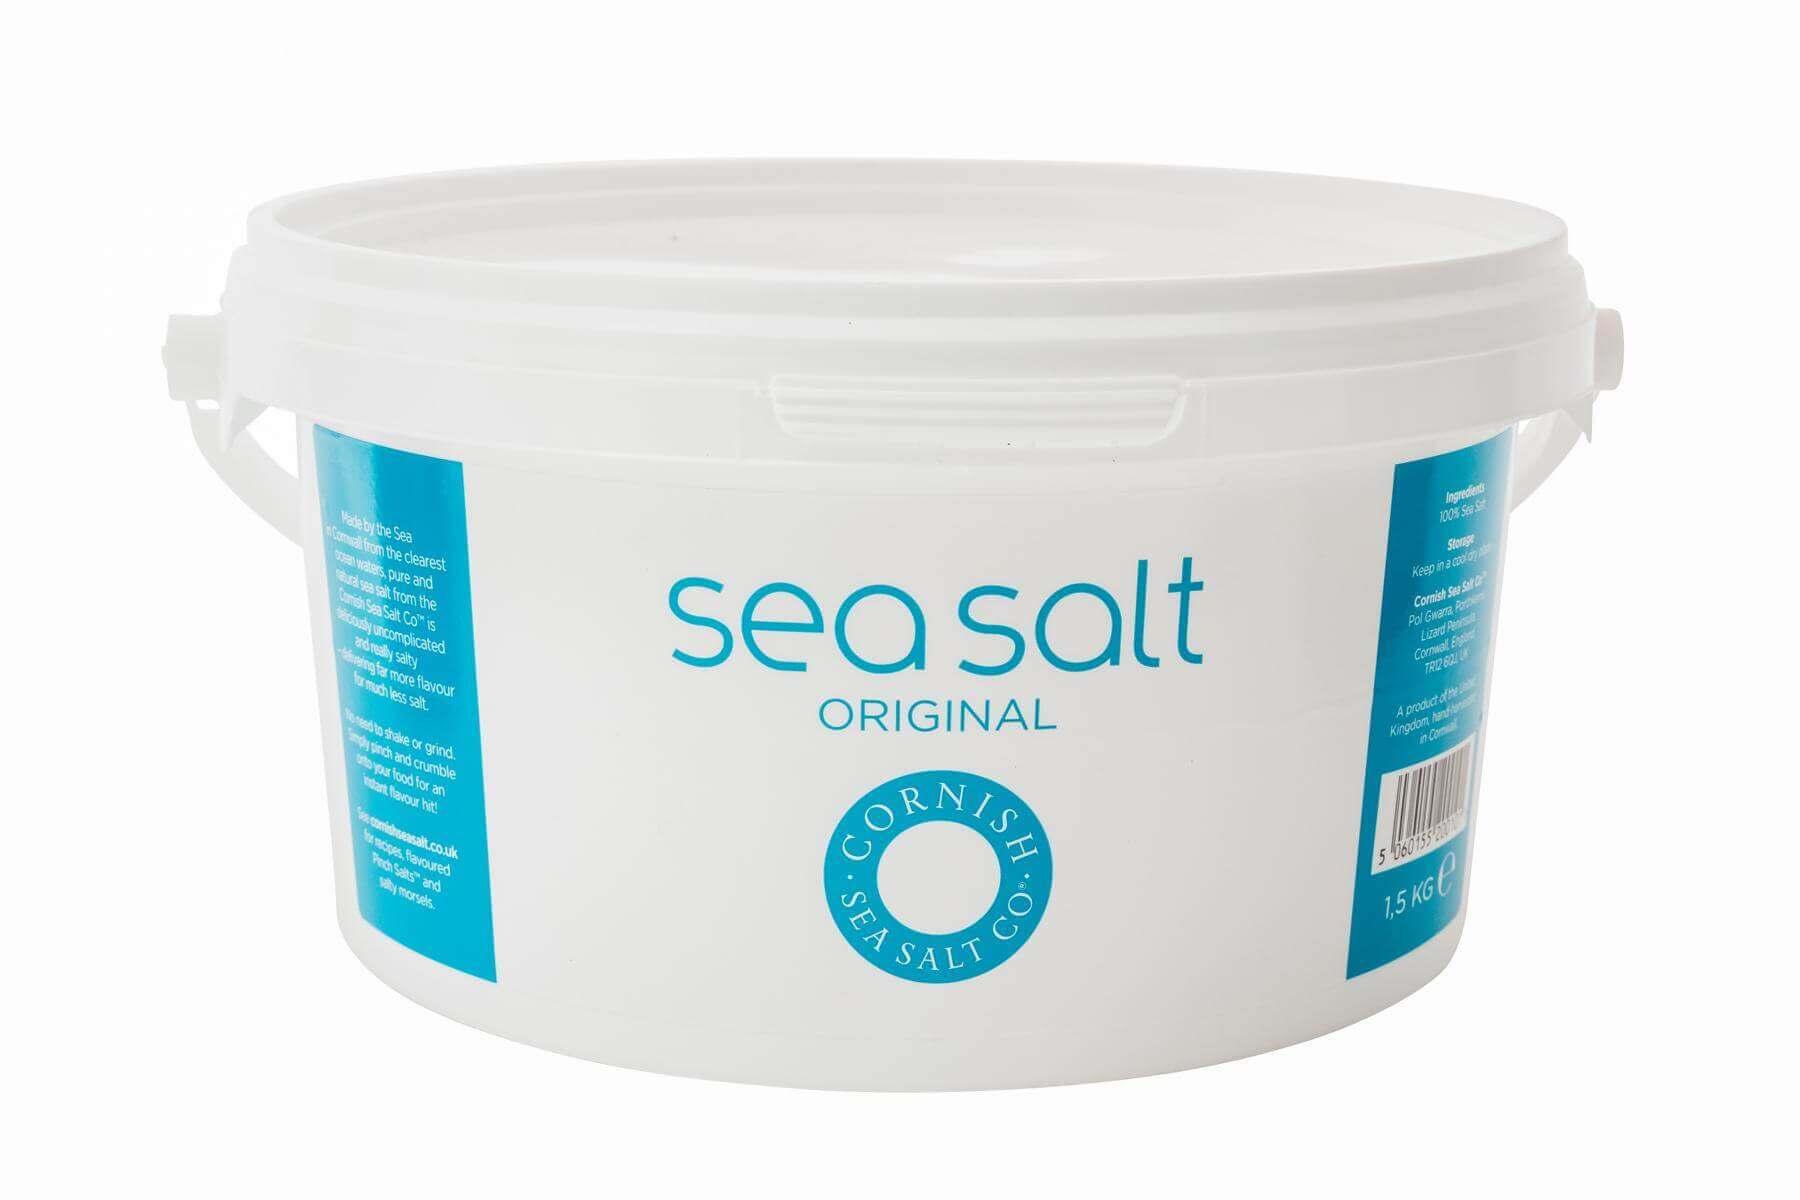 Meersalz - Cornish Sea Salt kaufen Cornish Sea Salt Original Meersalz Tub Cornish Sea Salt Crystals Cornish Sea Salt Meersalz - Cornish Sea Salt kaufen